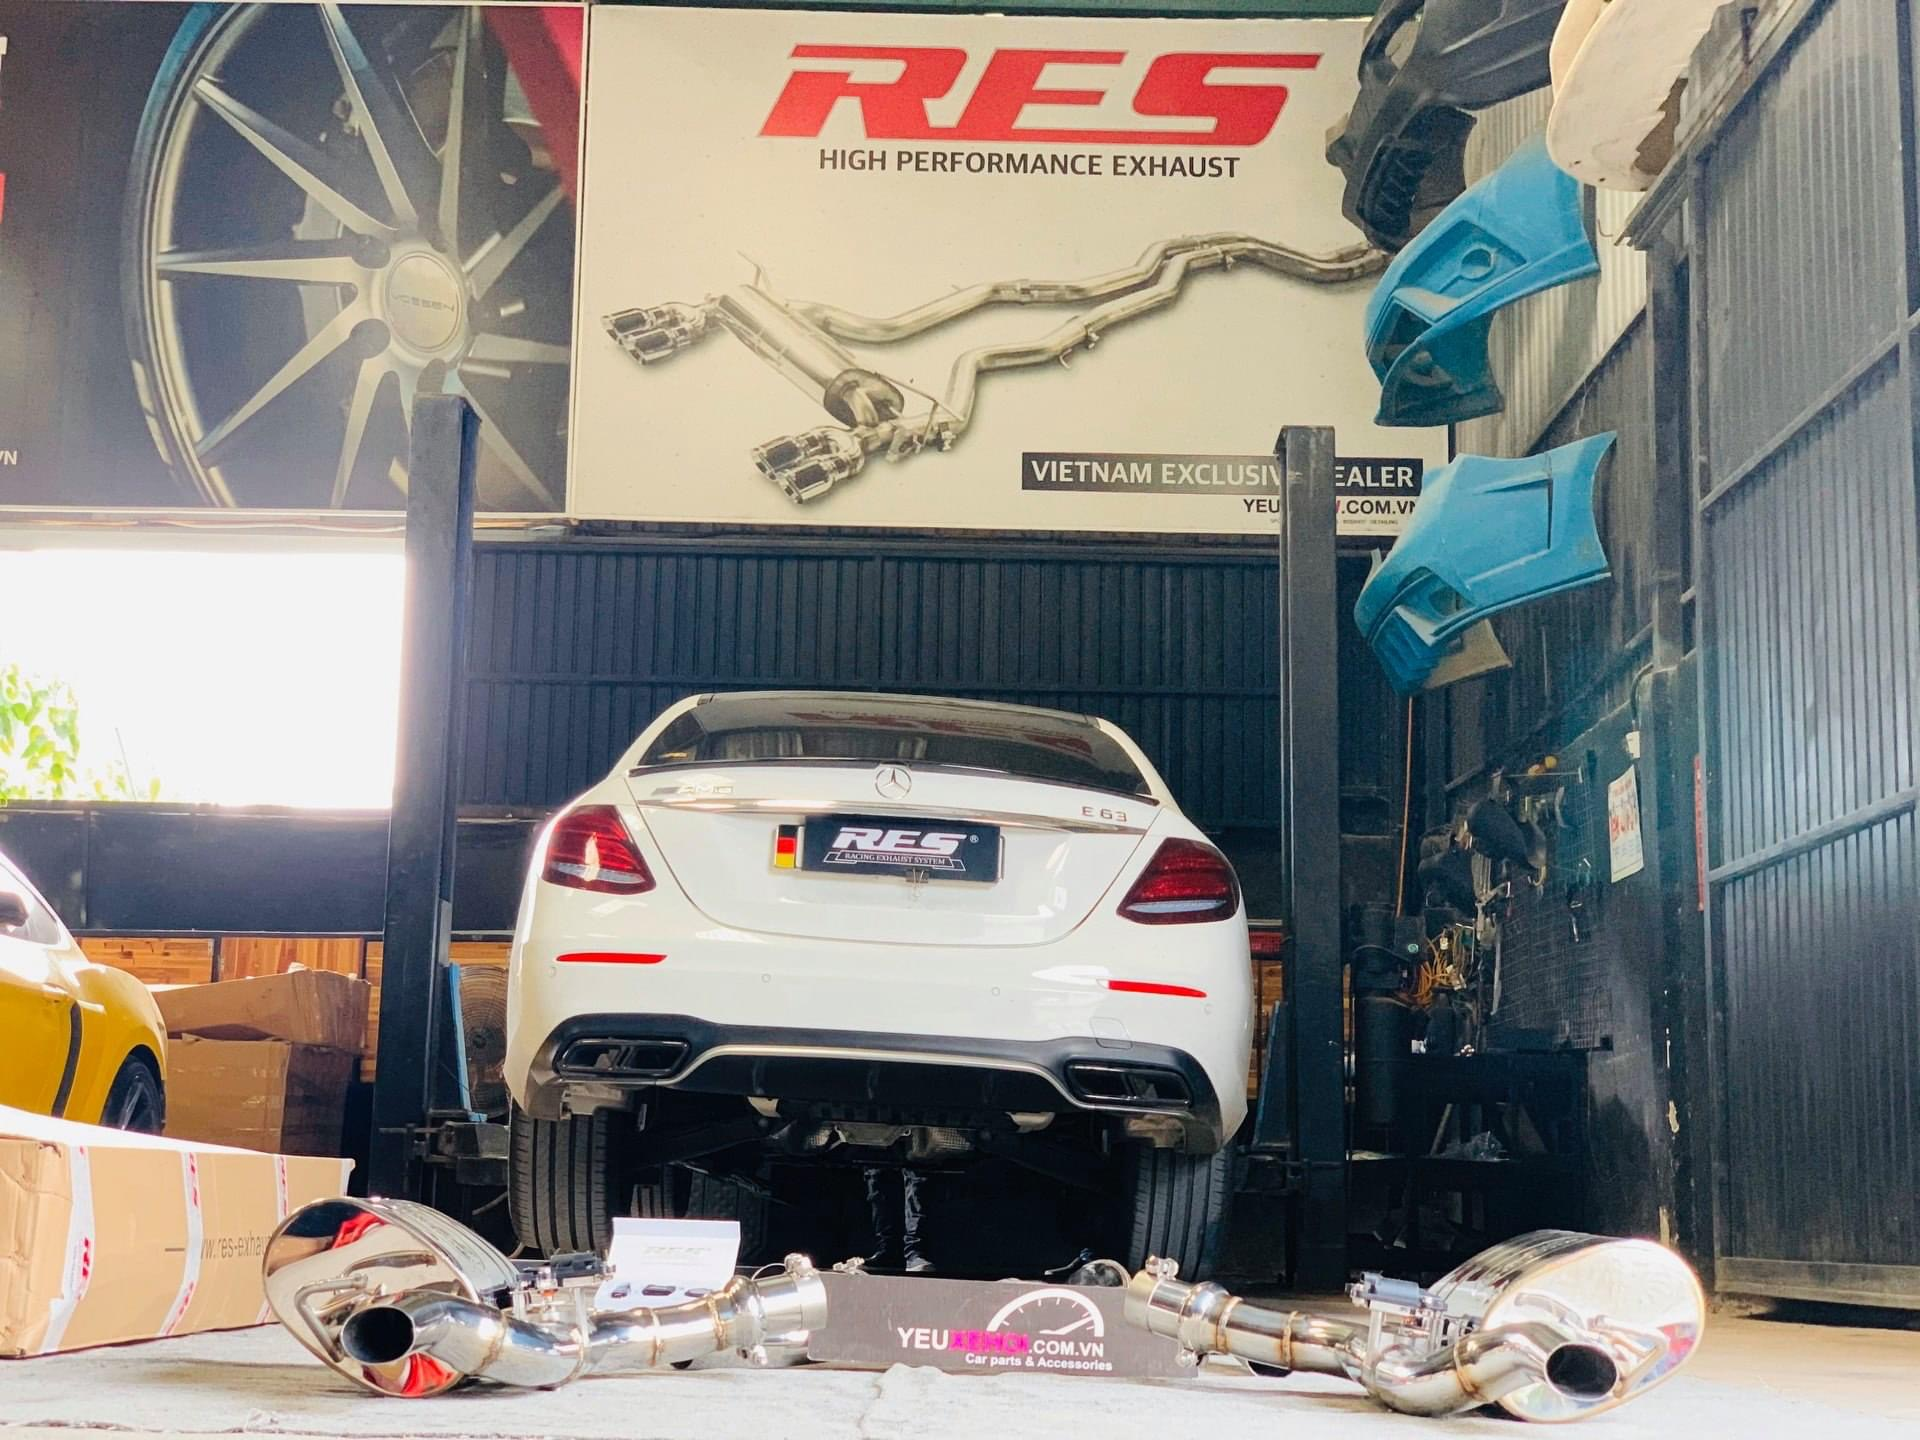 MERCEDES E200 W213 / RES EXHAUST